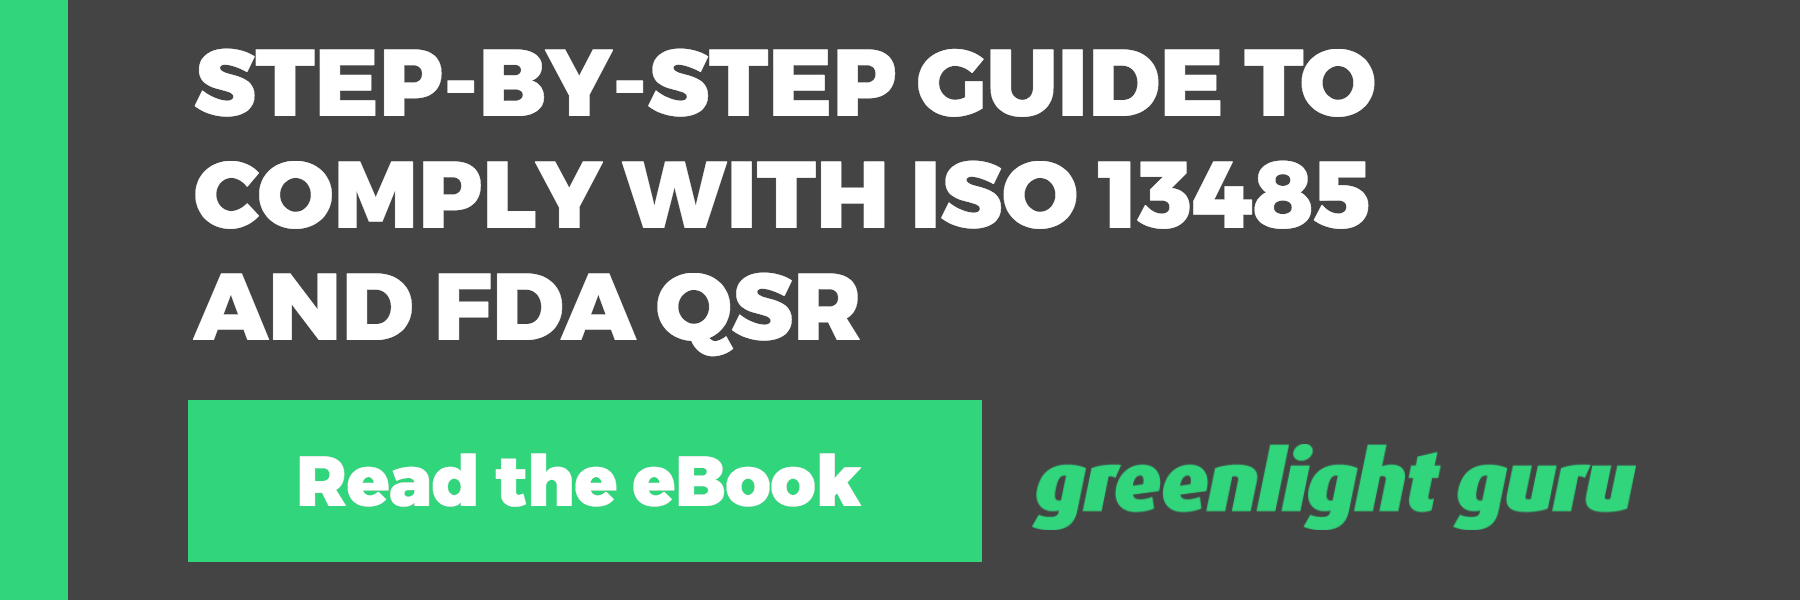 ISO 13485 and FDA QSR: A Step-by-Step Guide to Complying with ...